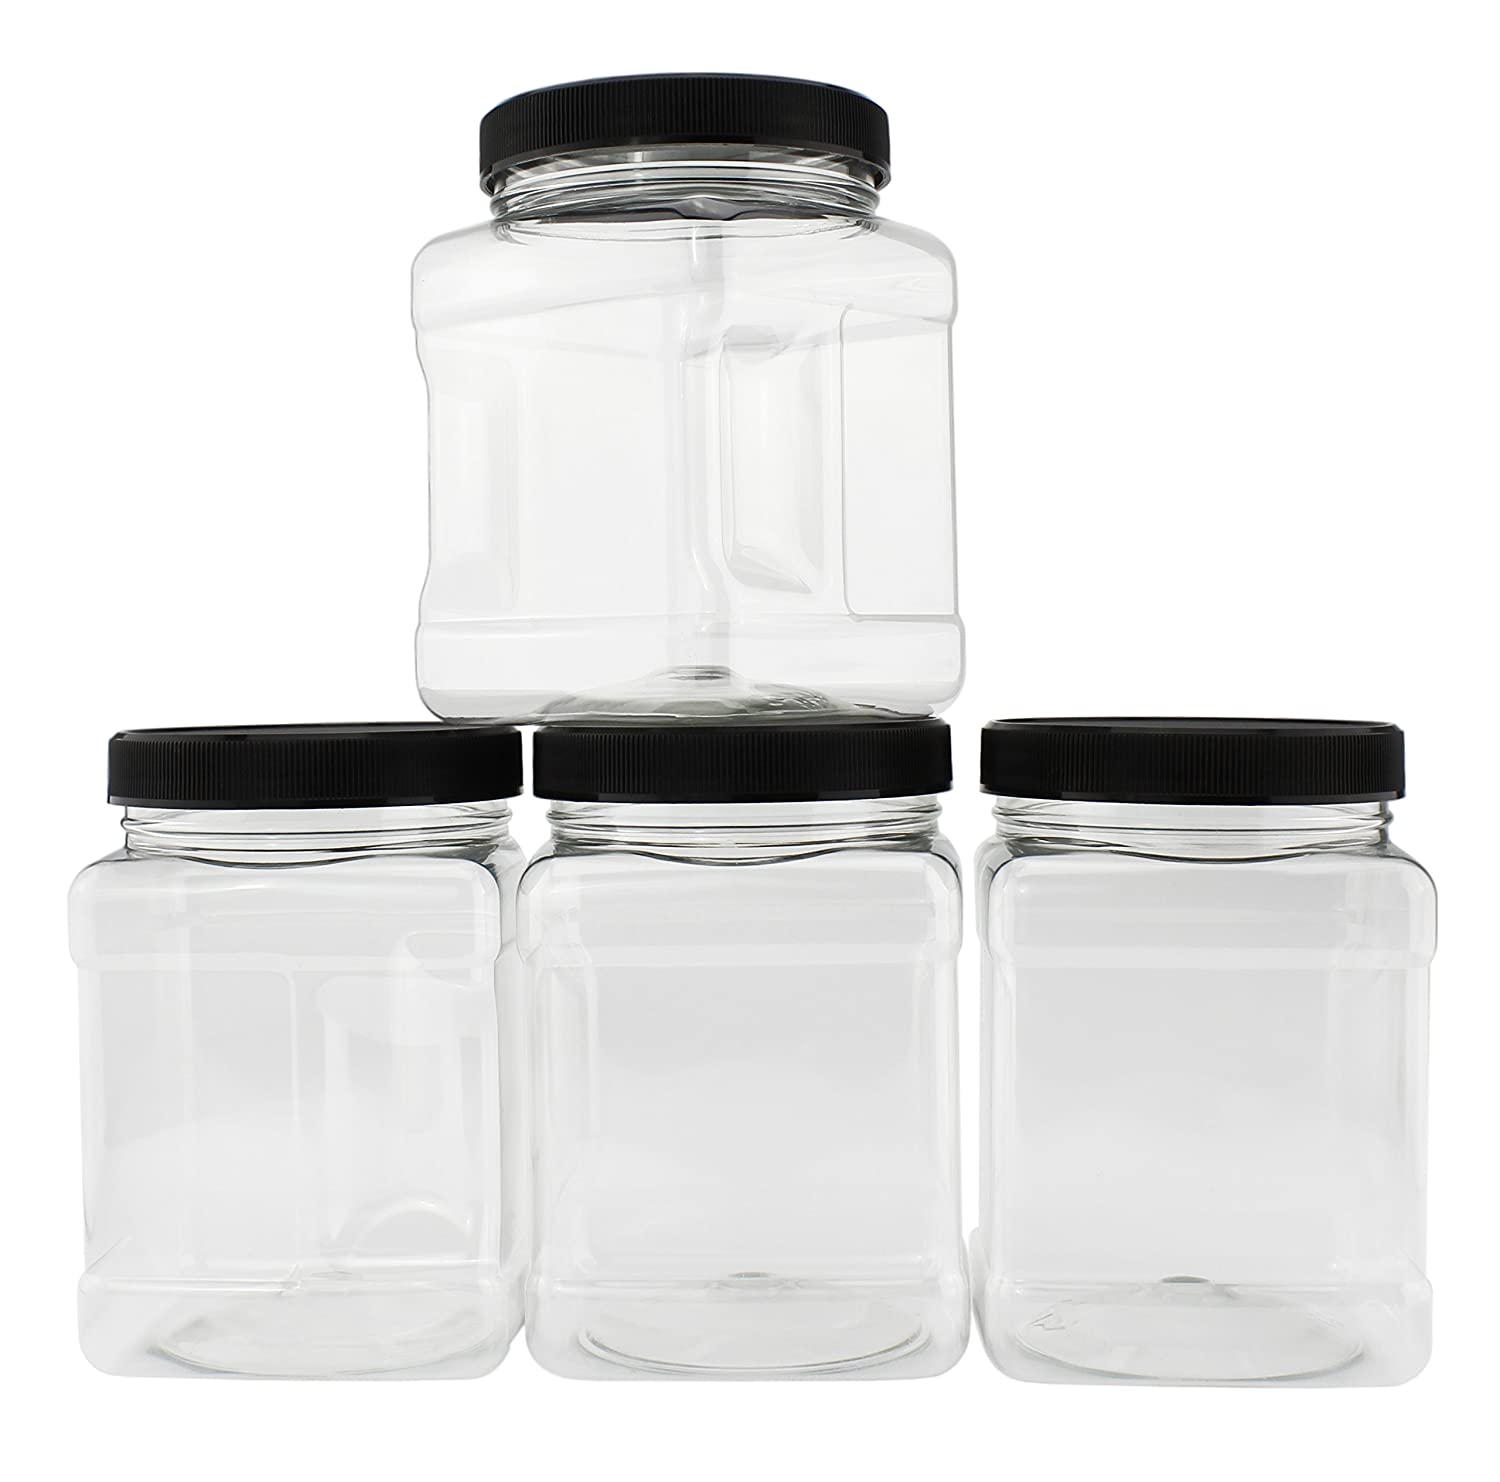 32-Ounce Square Plastic Jars (4-Pack); Clear Rectangular 4-Cup Canisters w/Black Lids, Easy-Grip Side